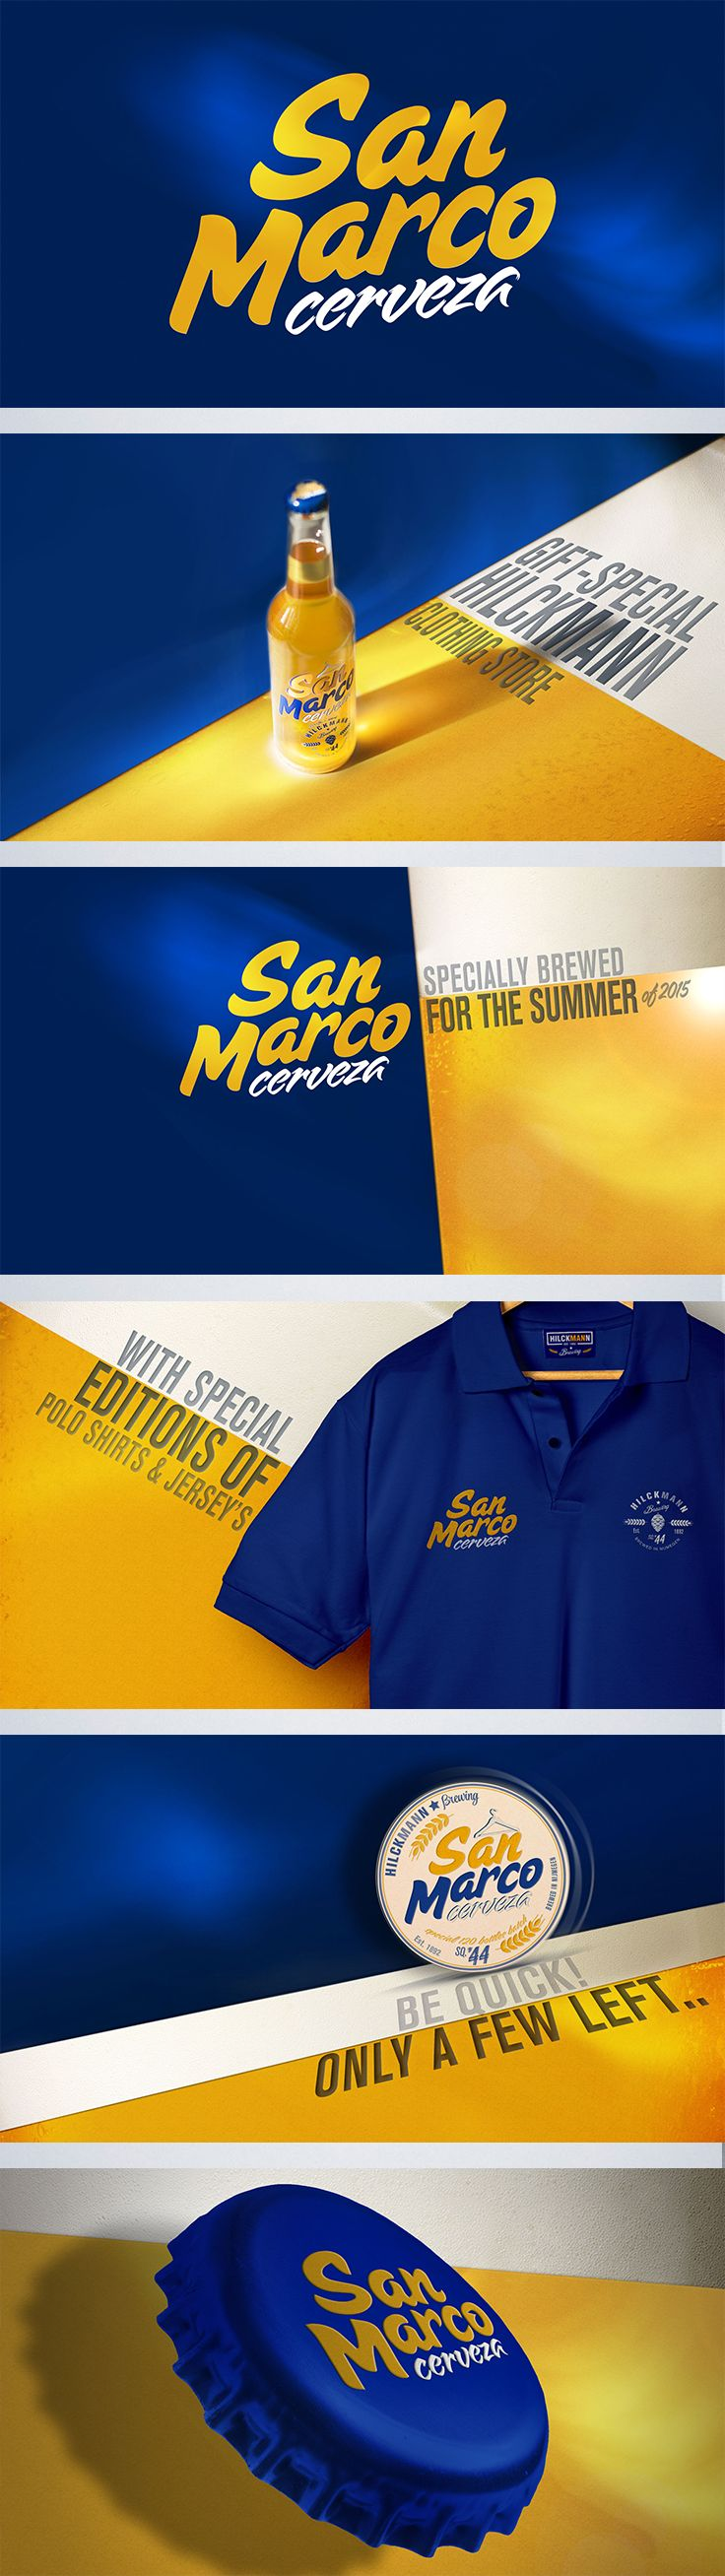 San Marco cerveza is a special edition beer project brewed and designed for clothing store Hilckmann